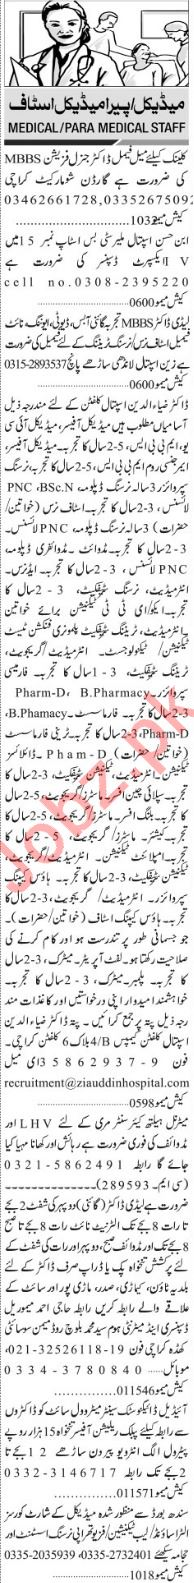 Jang Sunday Classified Ads 20th Jan 2019 for Medical Staff